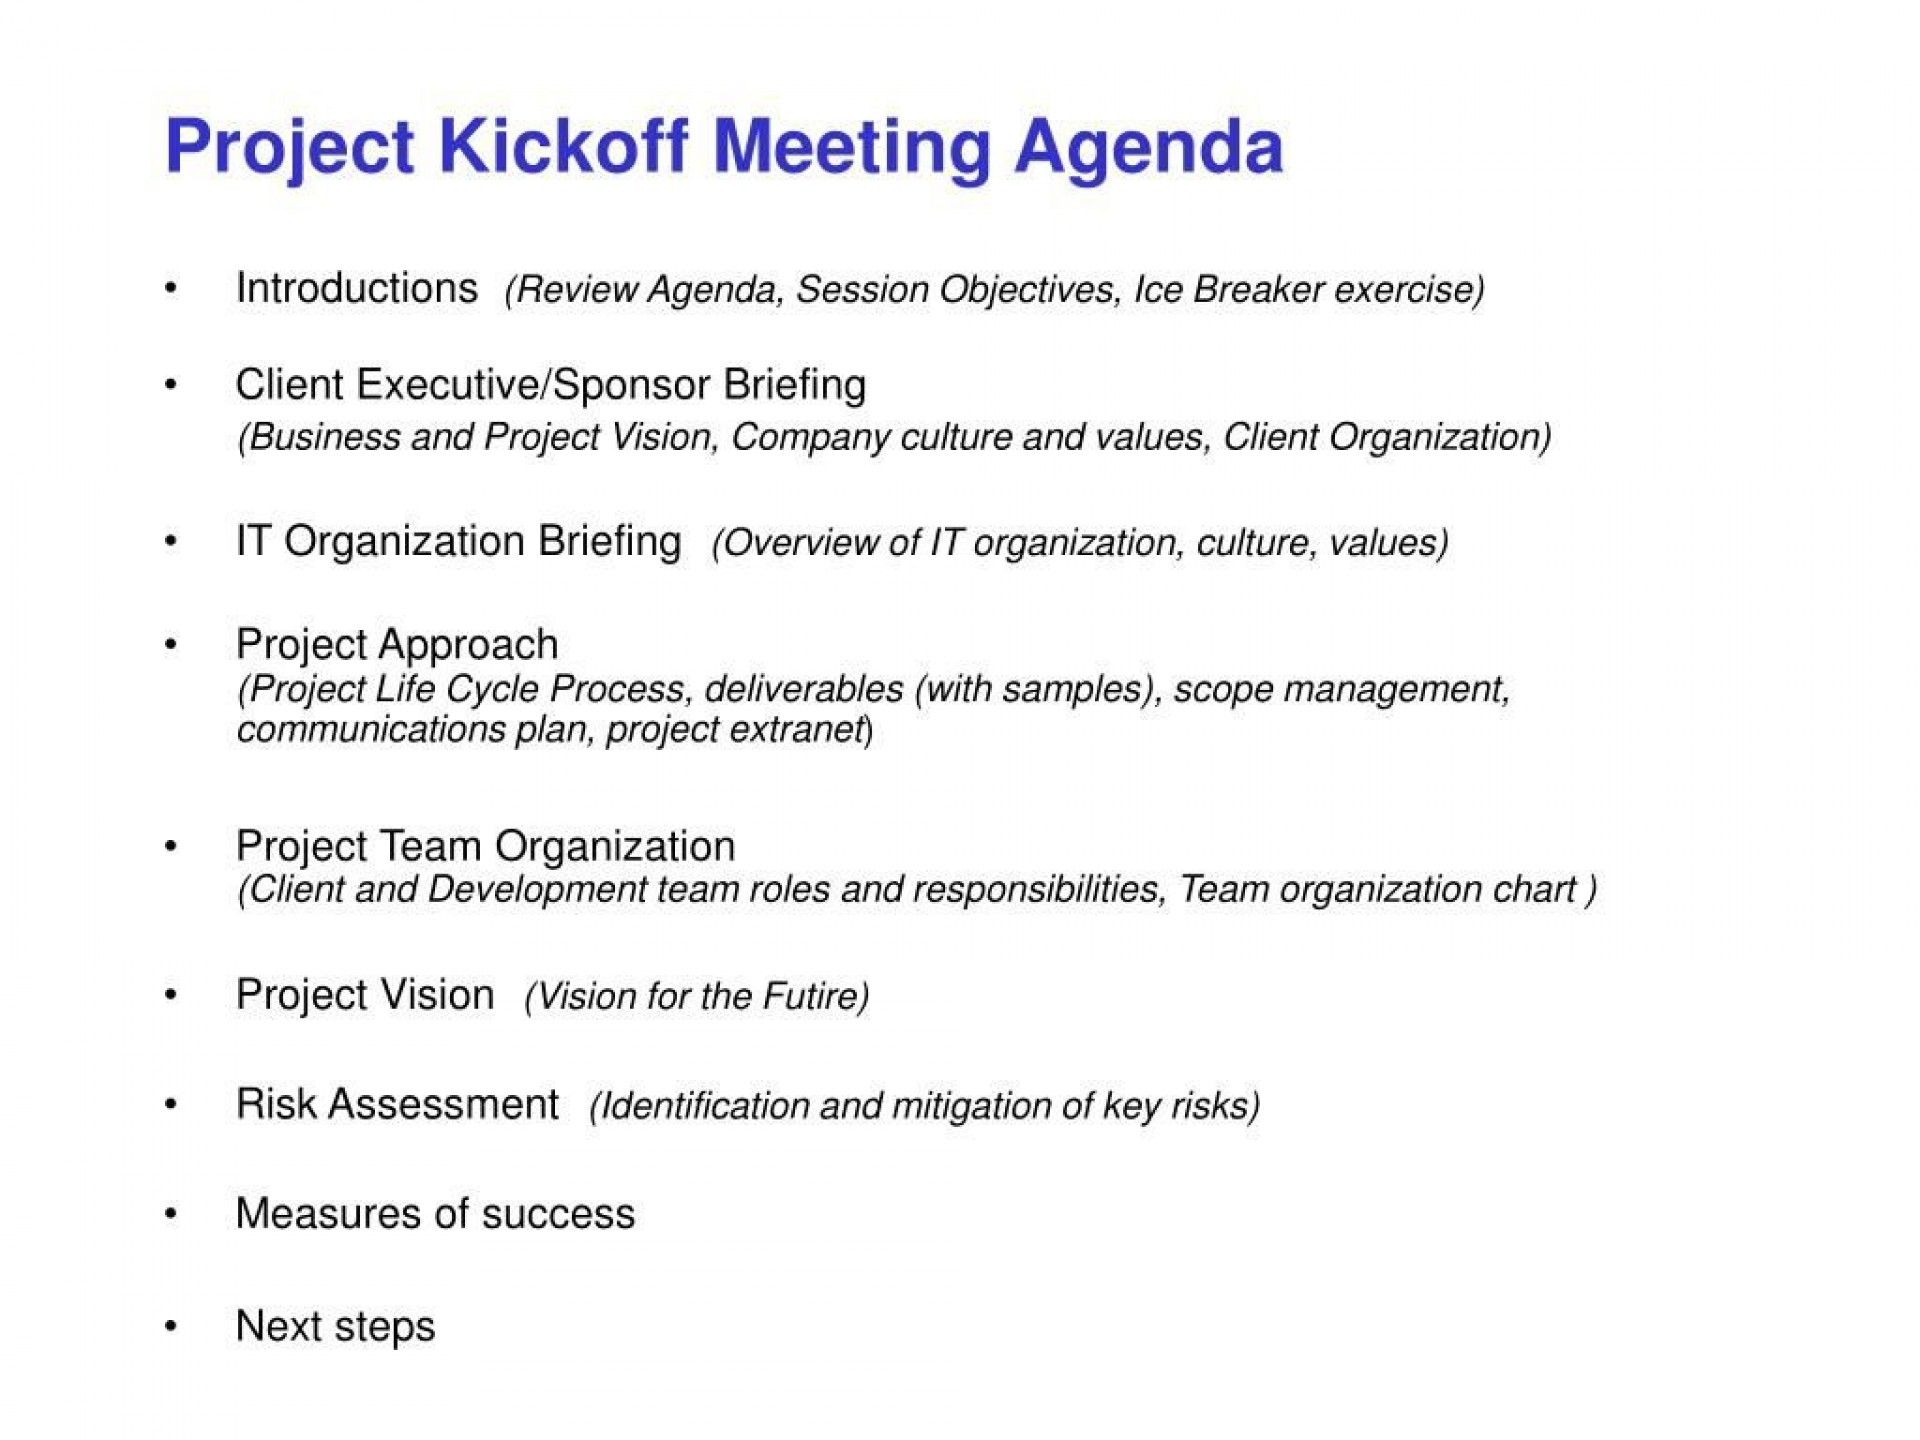 009 Unbelievable Project Kickoff Meeting Agenda Template High Def  Management1920